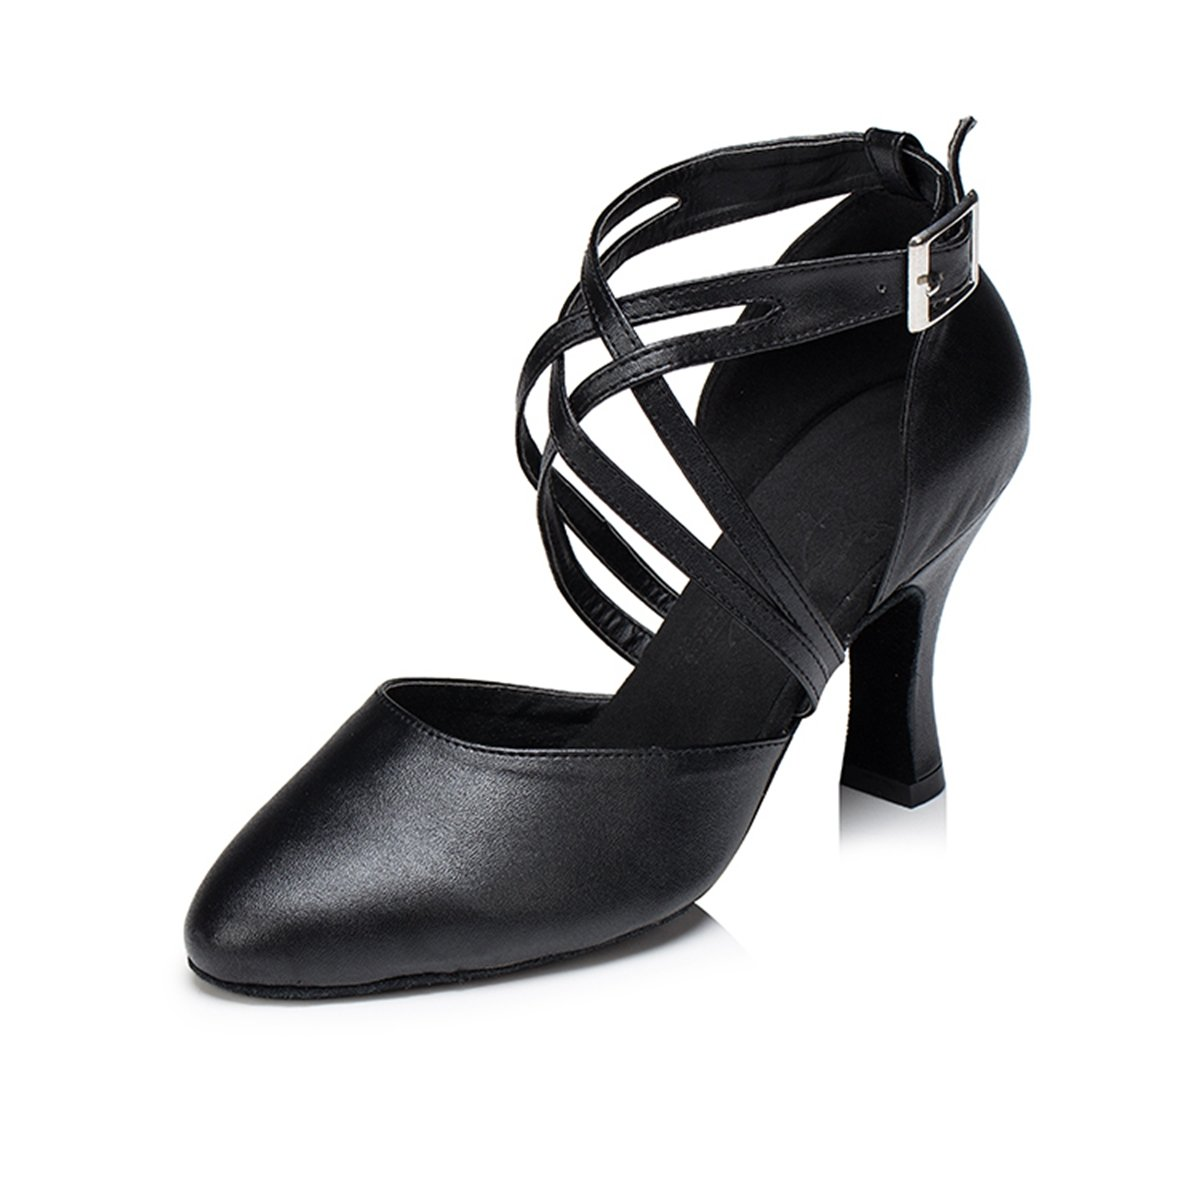 Miyoopark Ladies Ankle Wrap Buckle Leather Tango Latin Ballroom Dance Shoes Female Evening Pumps: Amazon.co.uk: Shoes & Bags